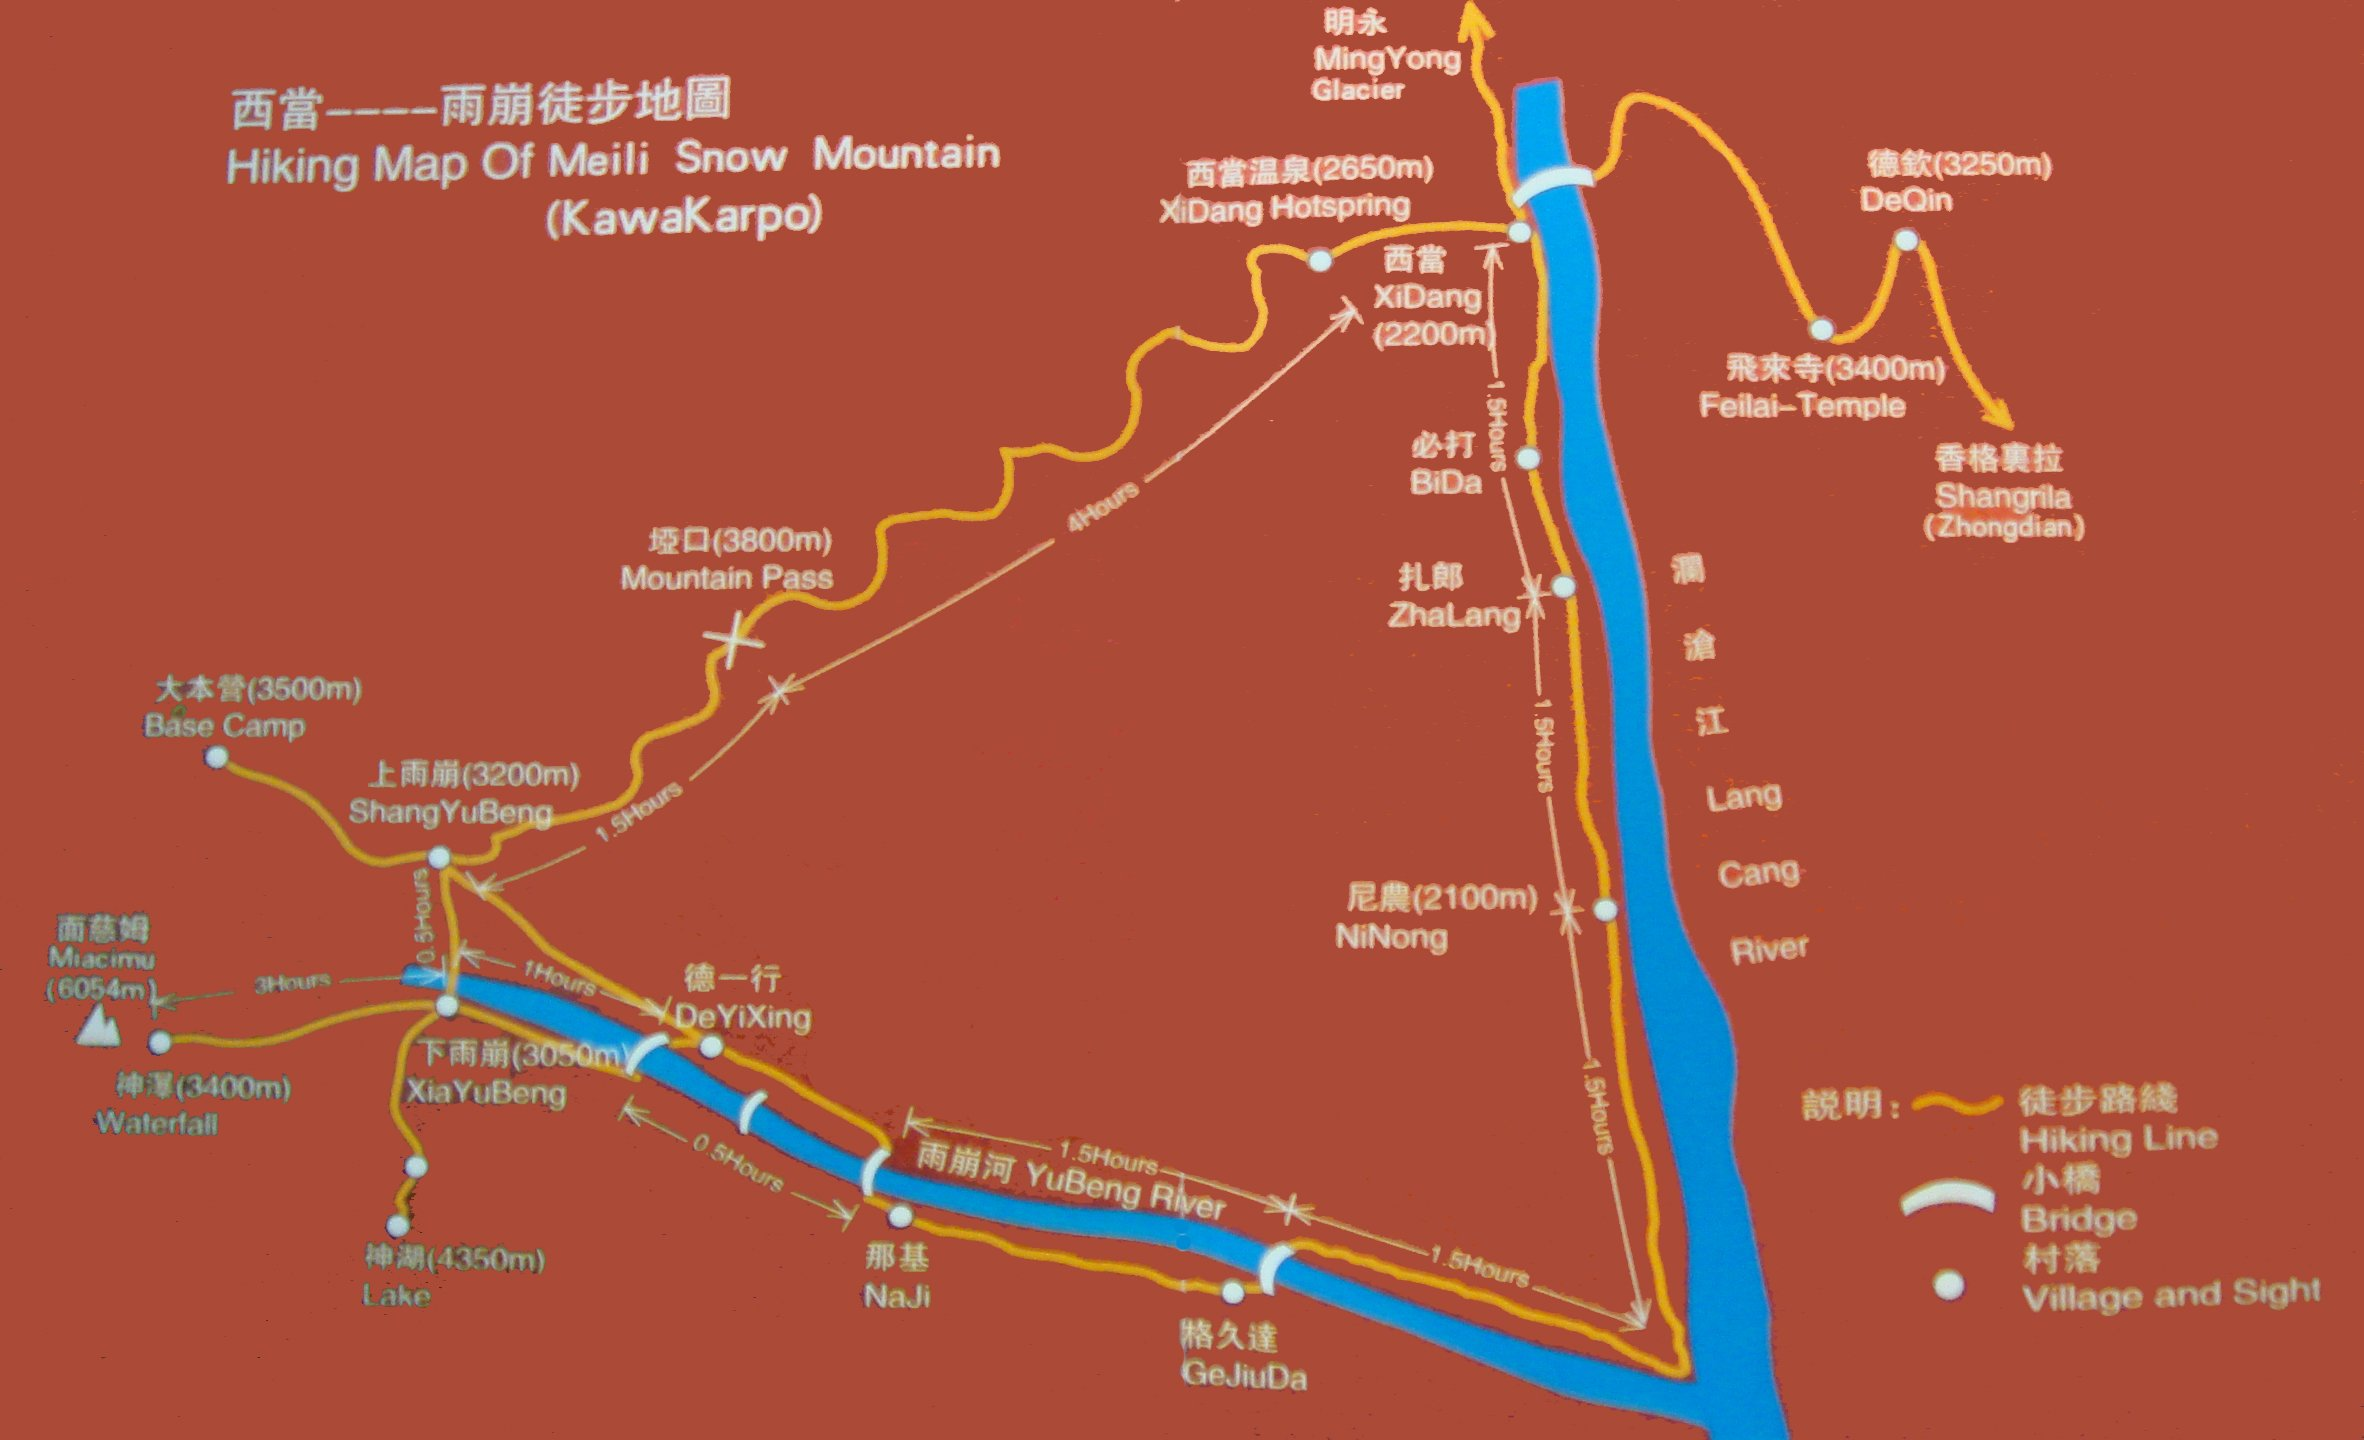 Lijiang Meili Snow Mountain Map